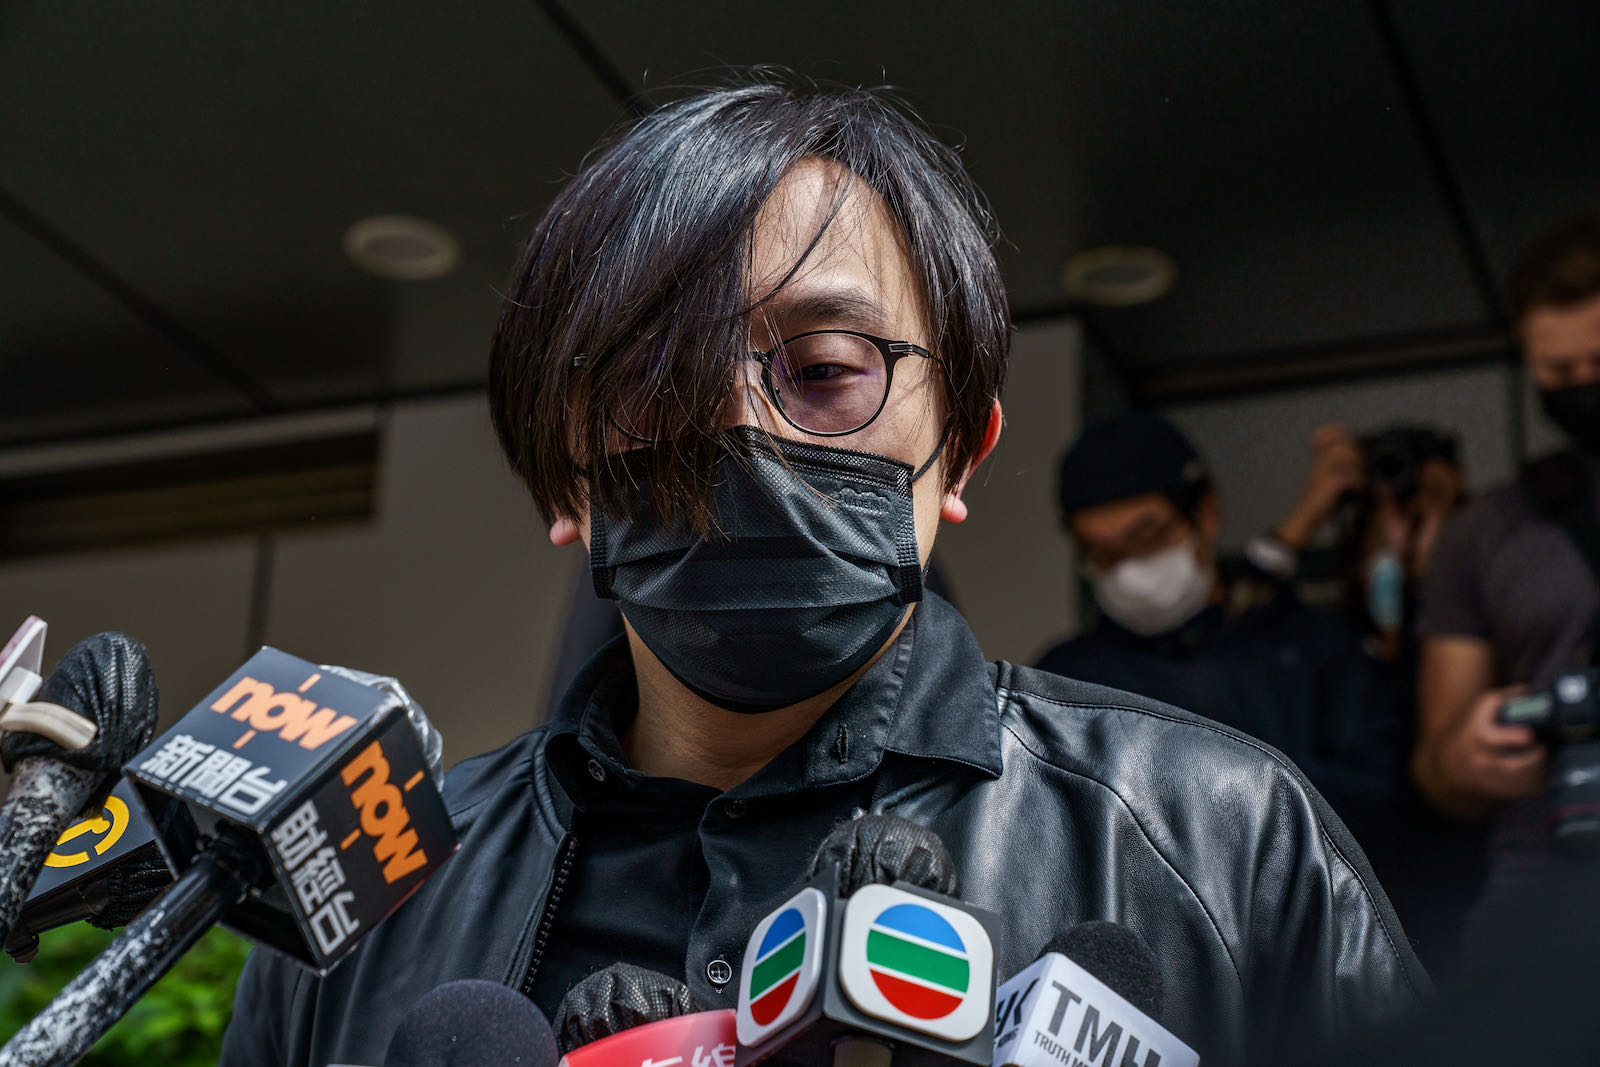 Mike Lam speaking to the press outside a Hong Kong police stattion